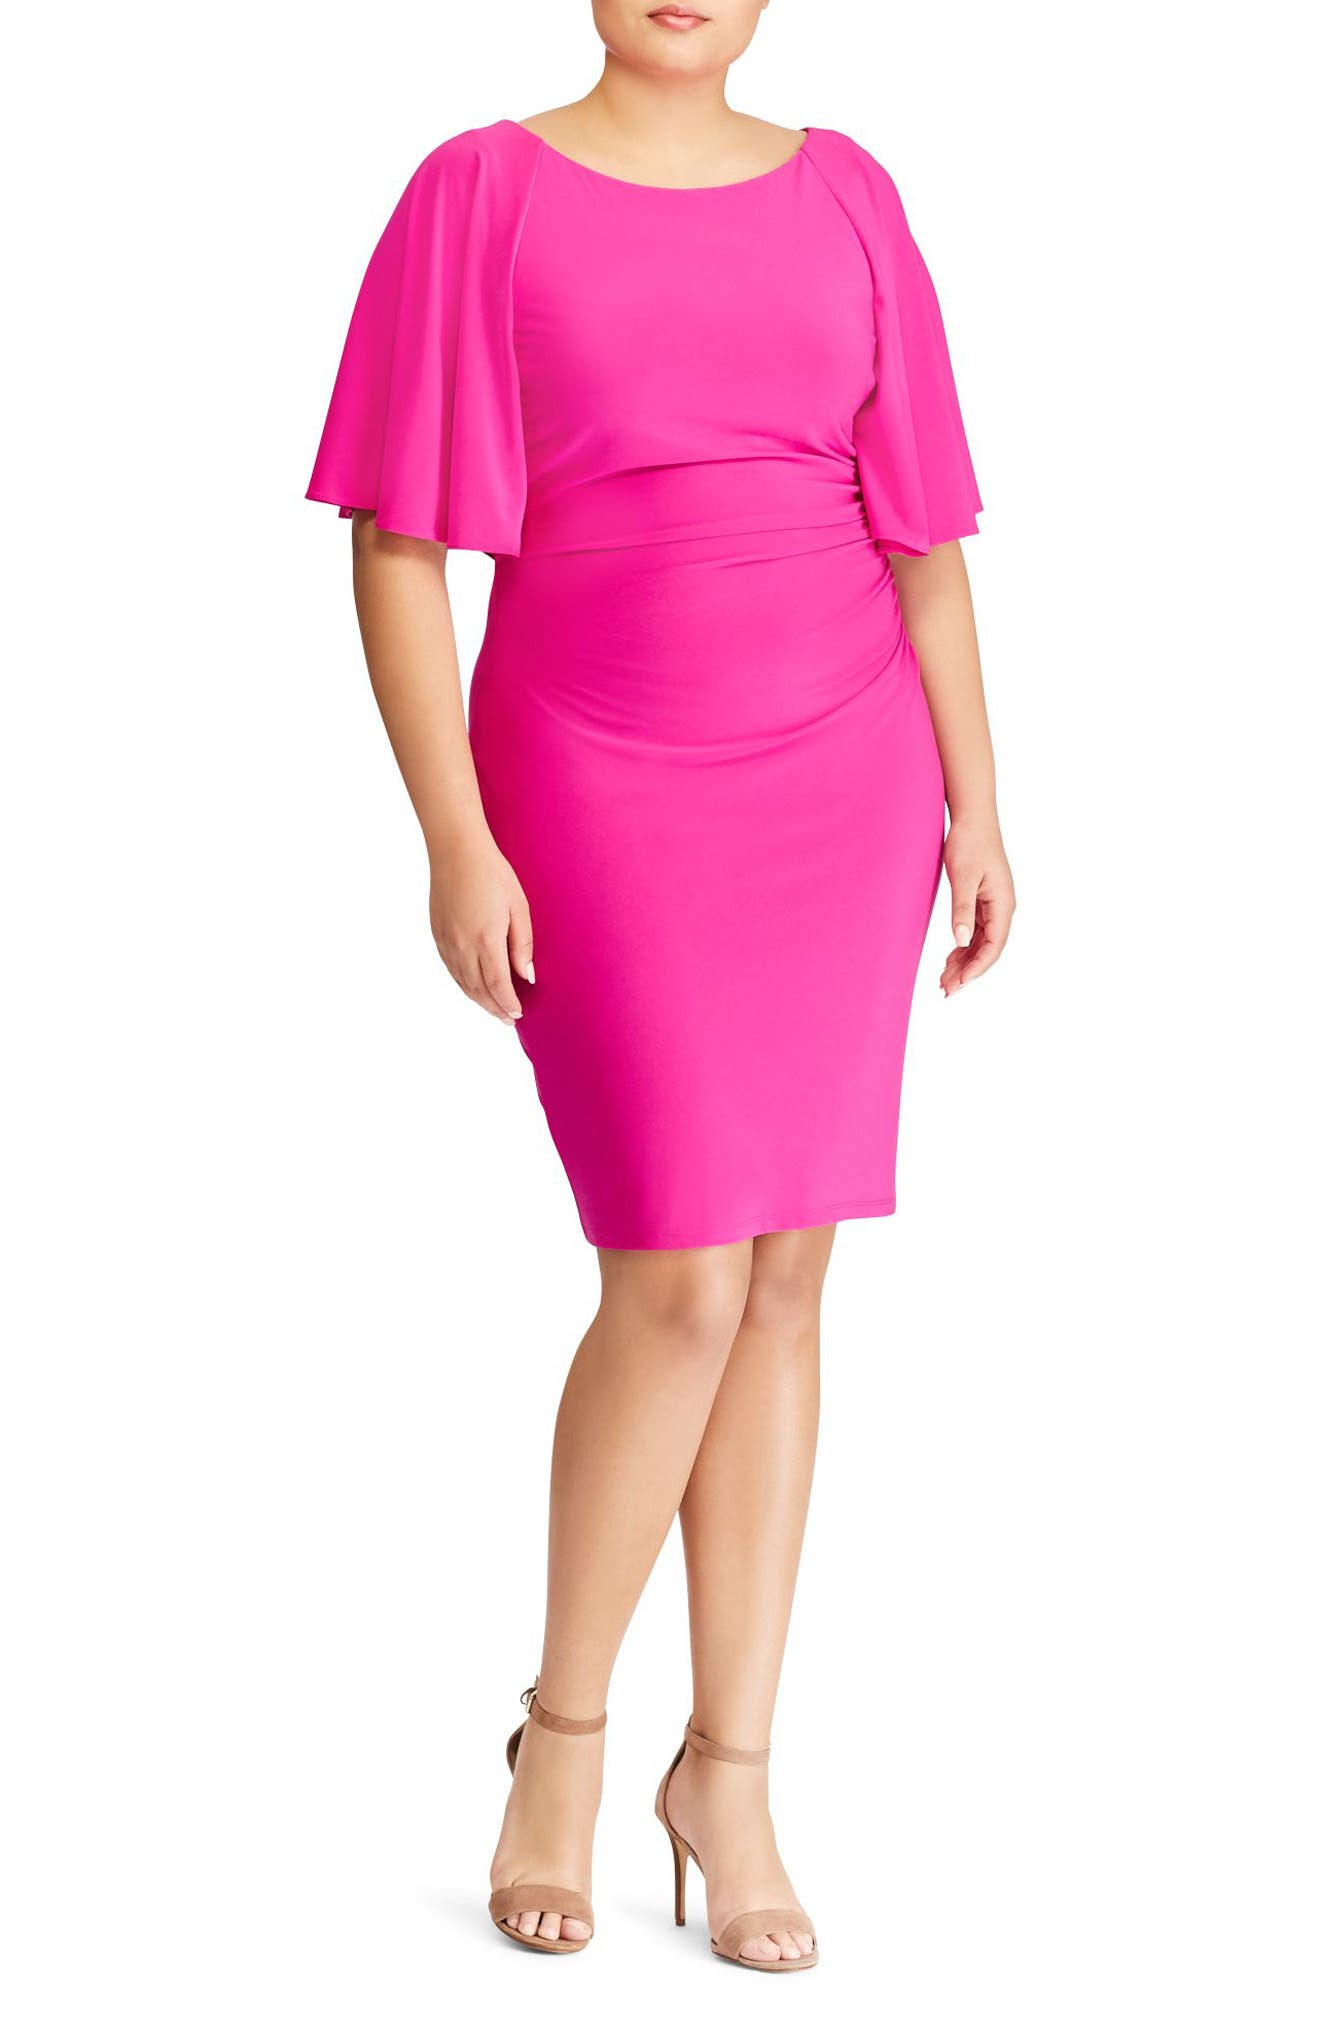 Lauren Ralph Lauren Jessup Body-Con Dress (Plus Size)